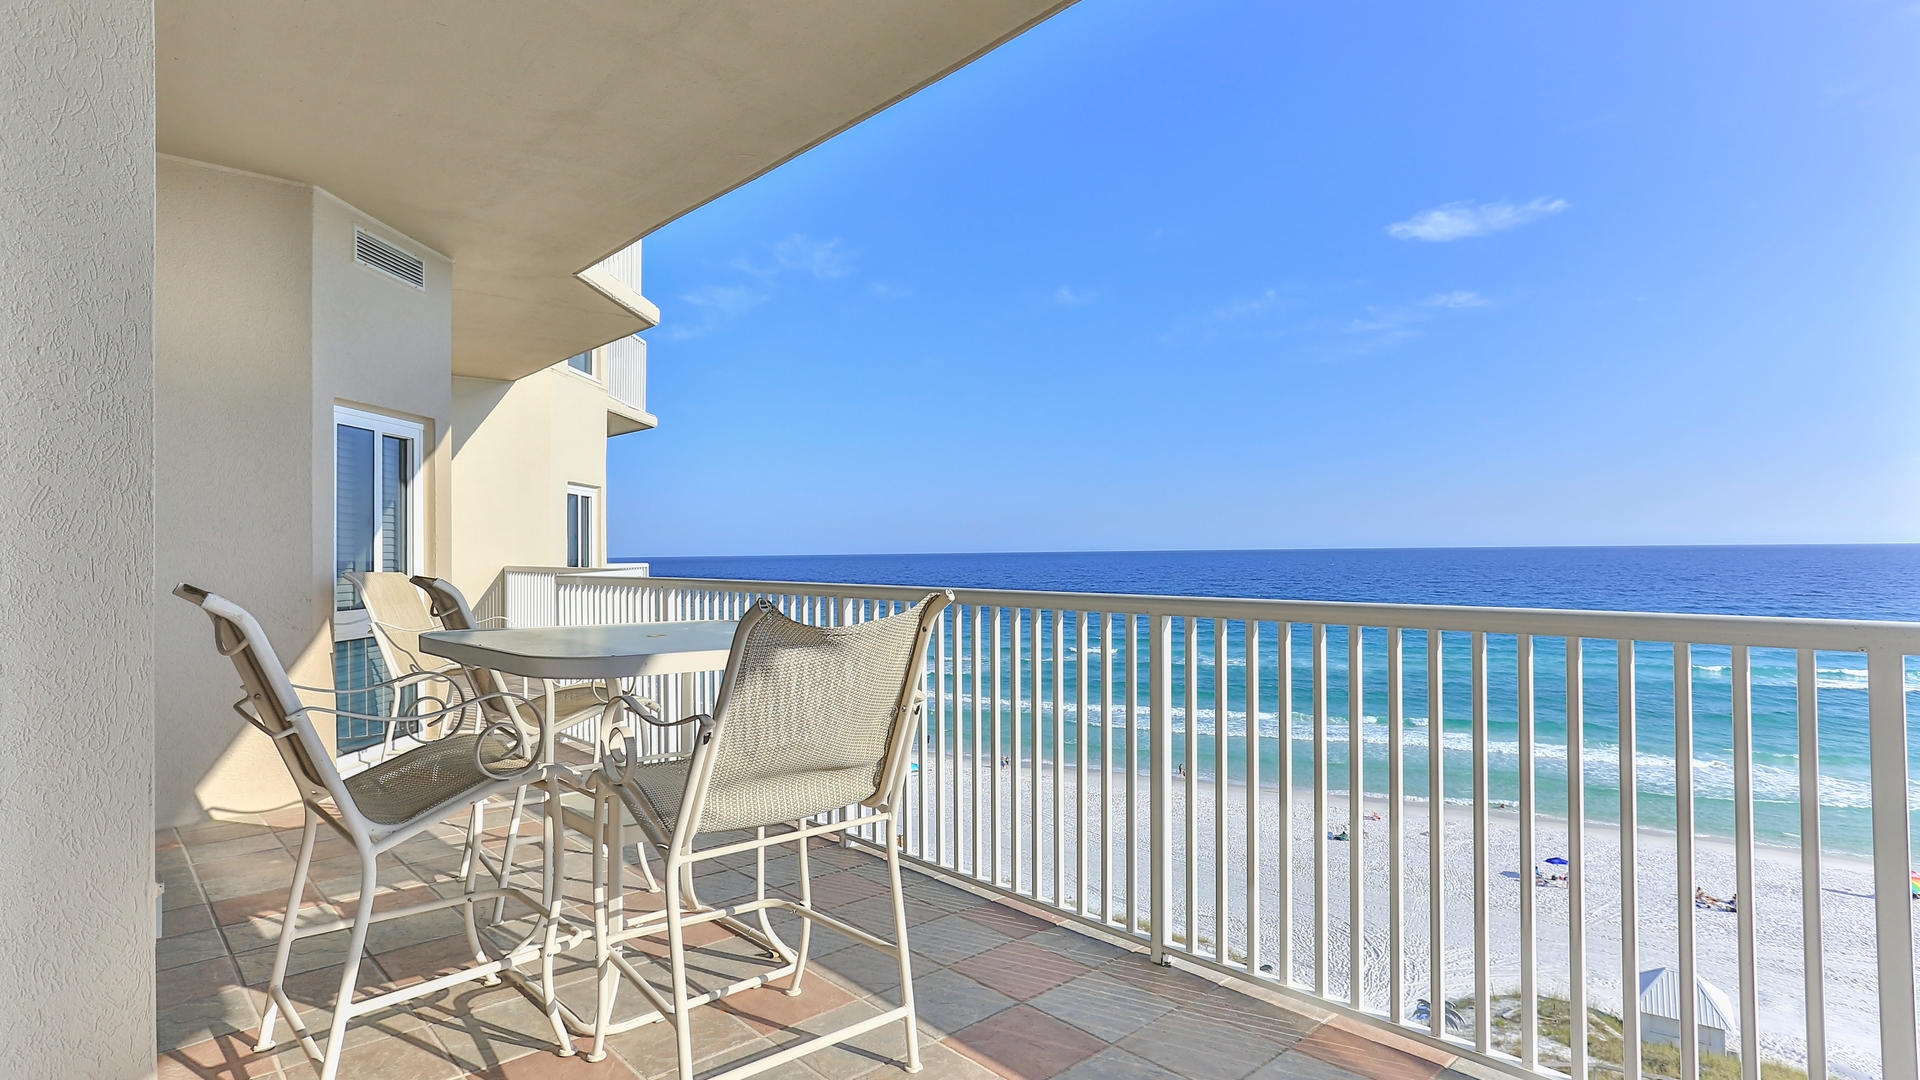 This beautifully furnished, quiet, Gulf front, 2675 sq. foot condo in the Sandestin area is the idea